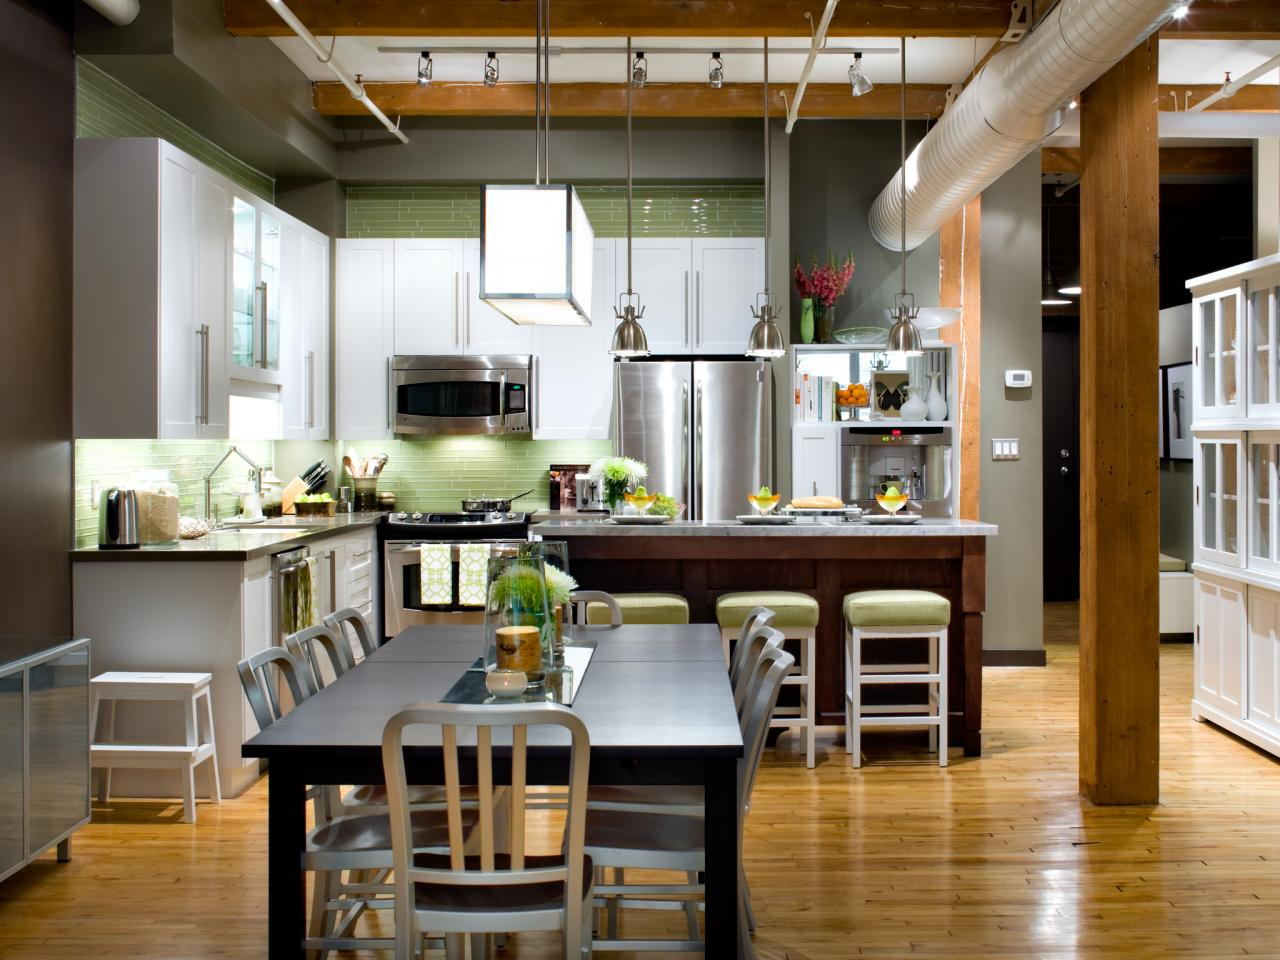 L shaped kitchen design pictures ideas tips from hgtv for Kitchen dining area decorating ideas